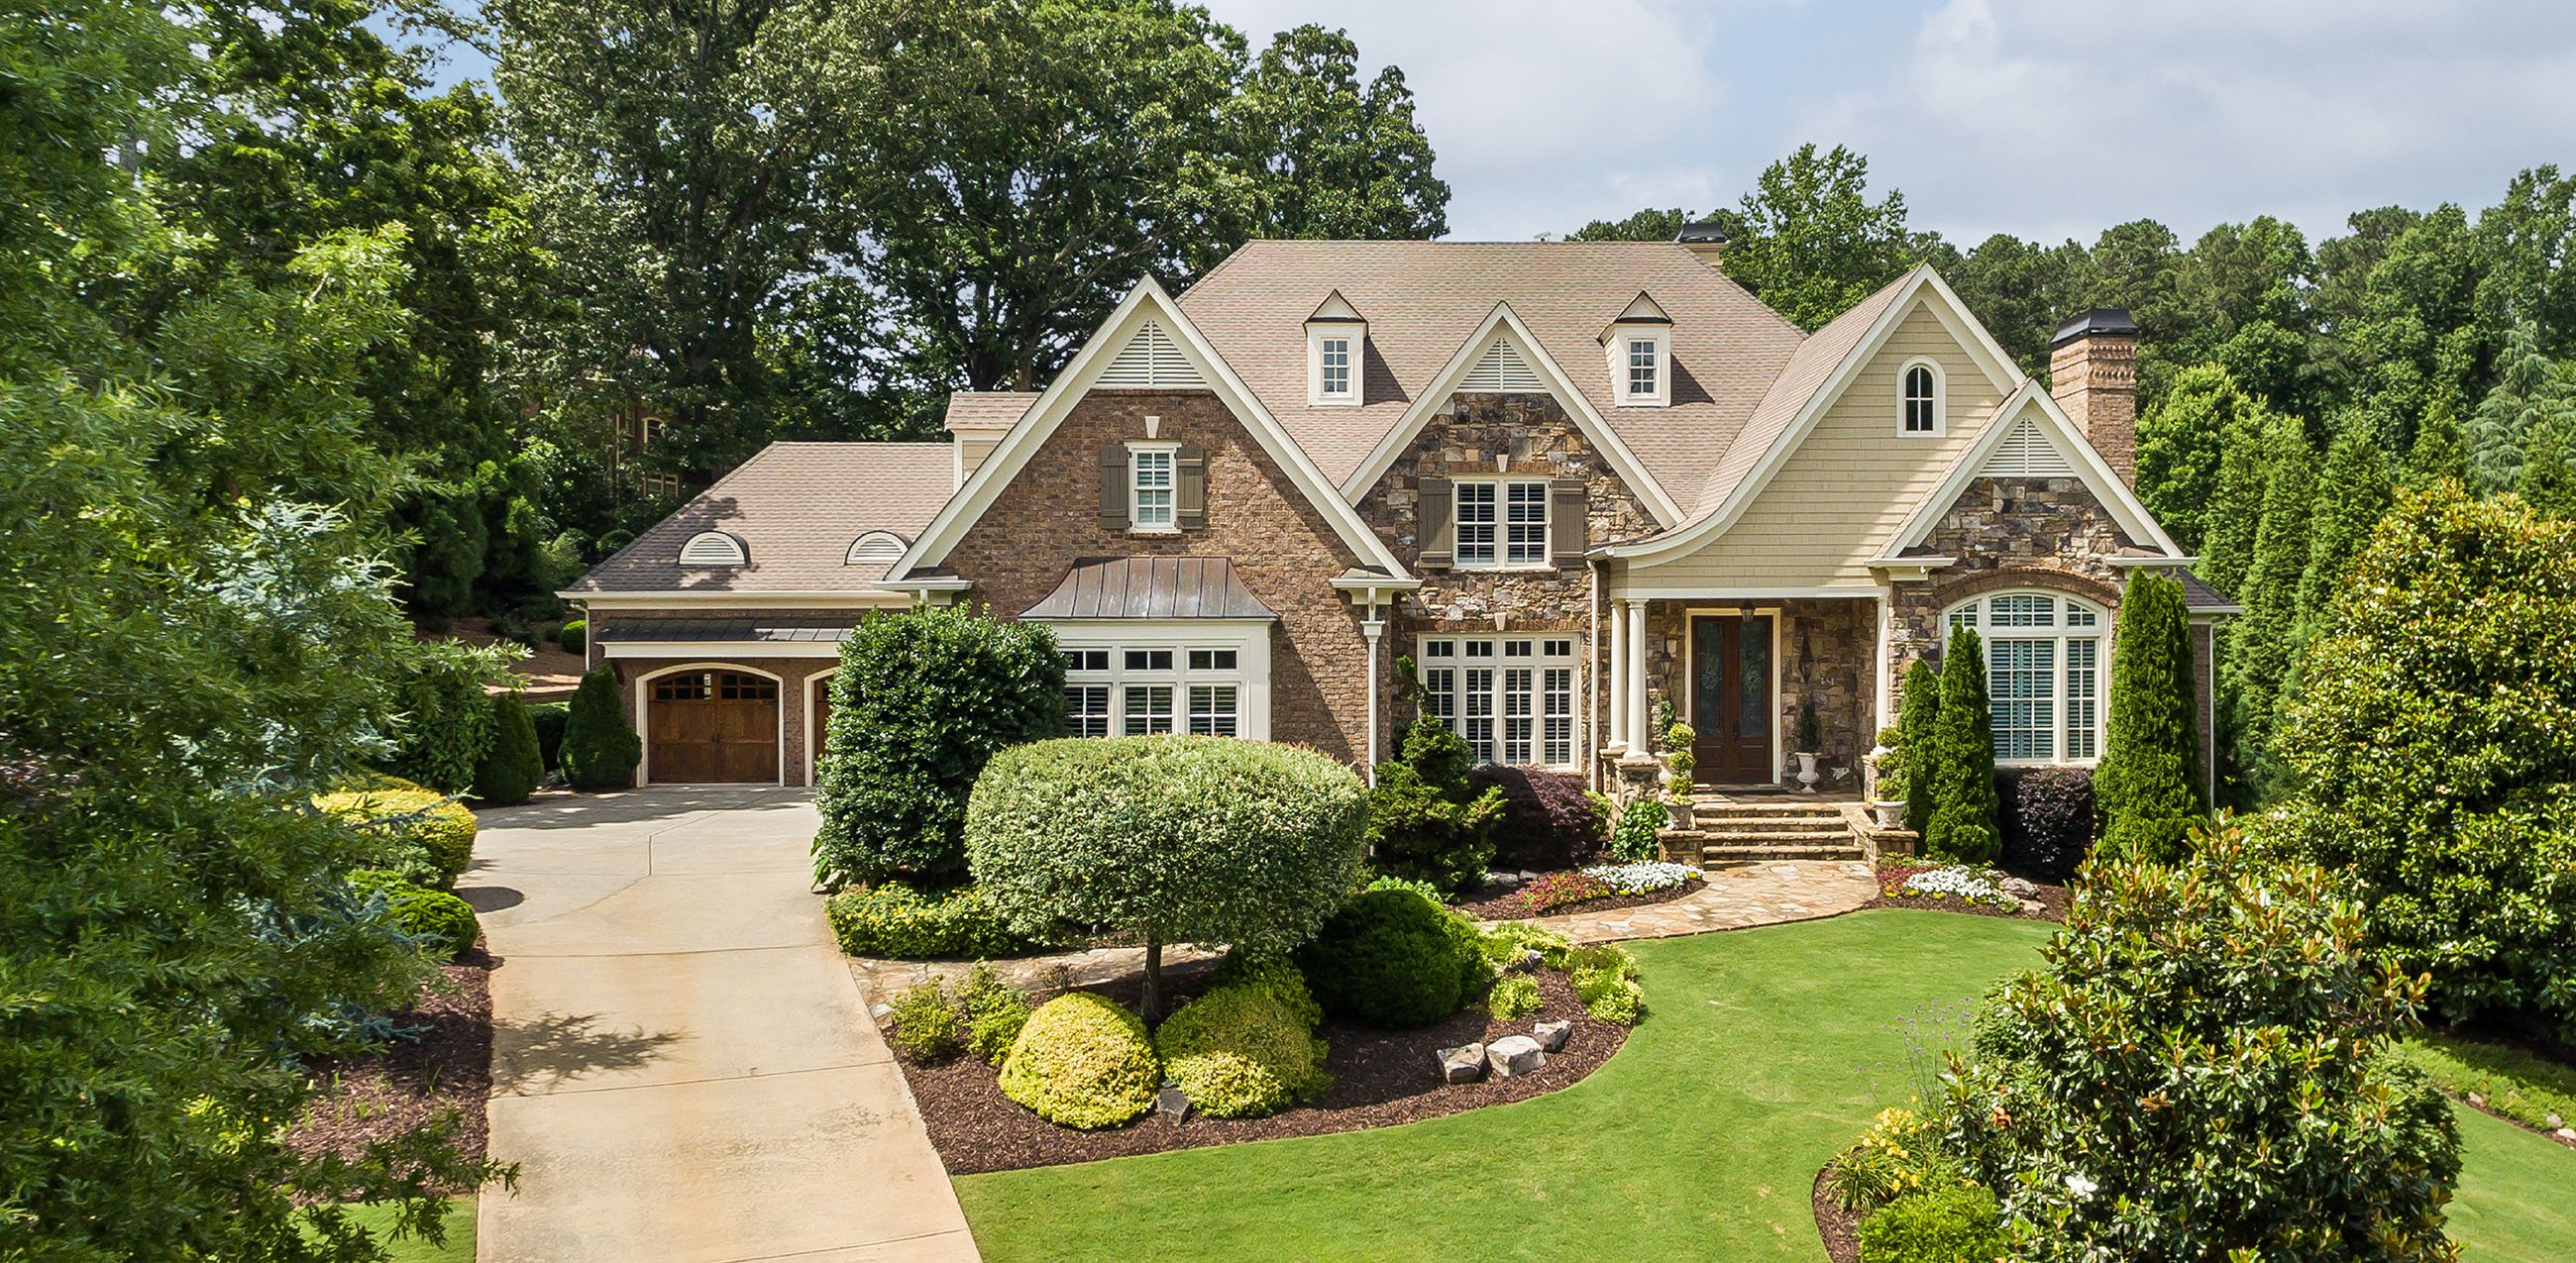 Pin by New Homes on BHHS website ideas Sell my house